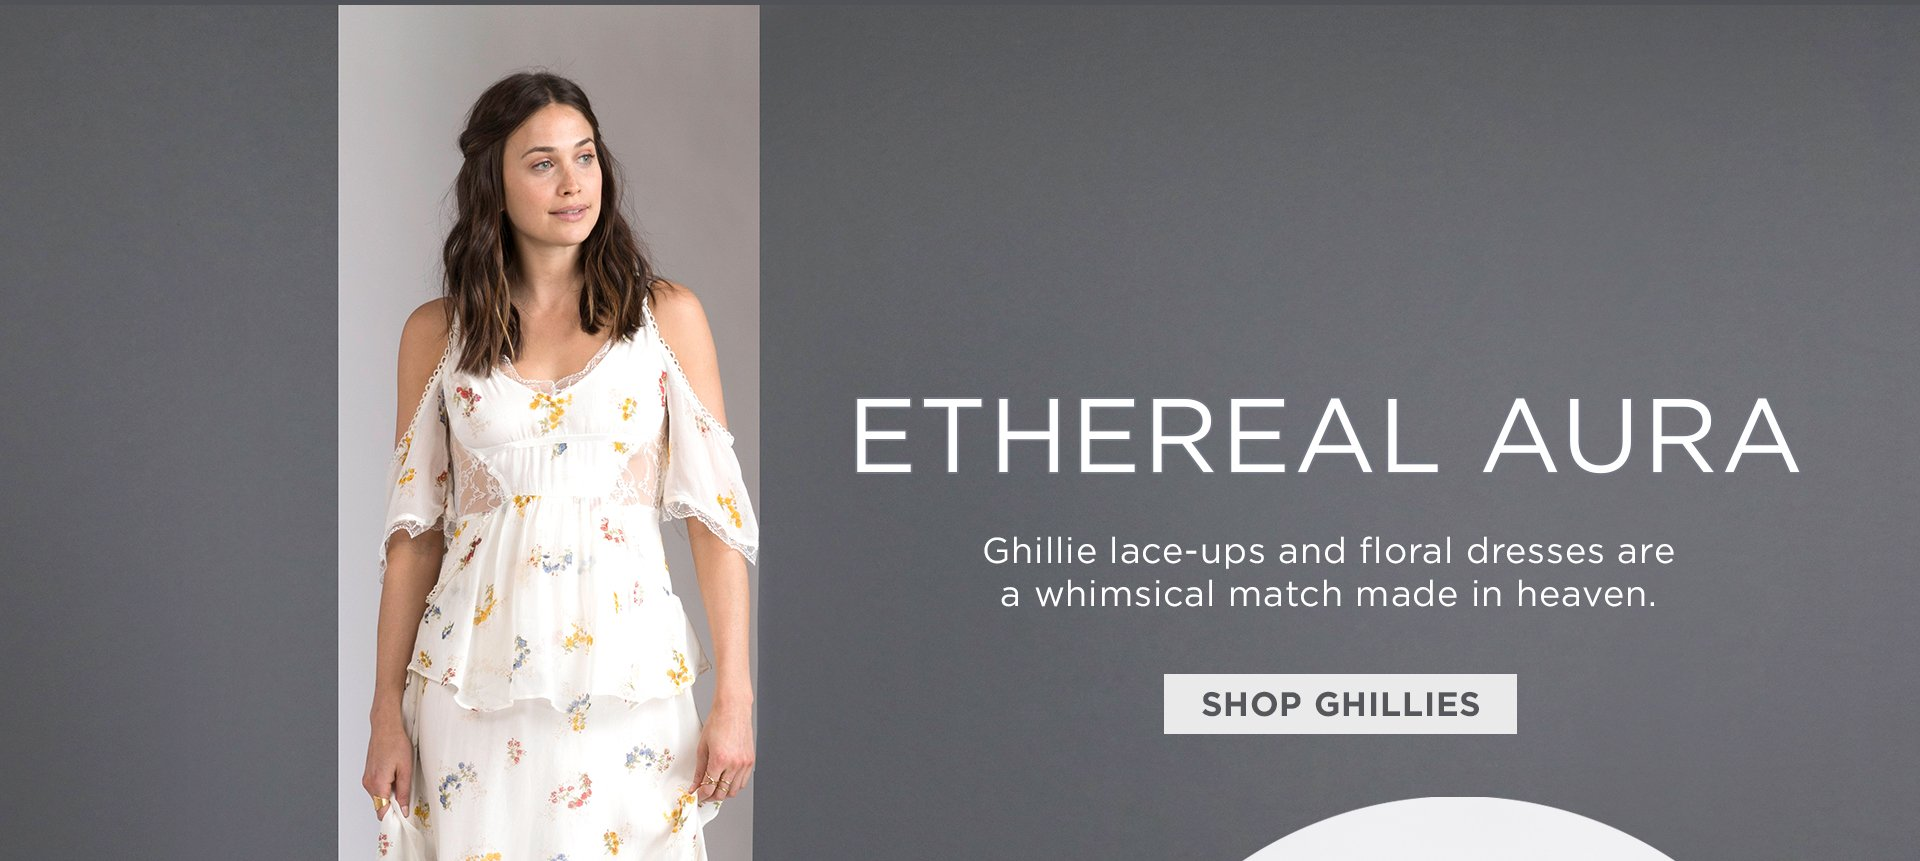 Shop Ghillies